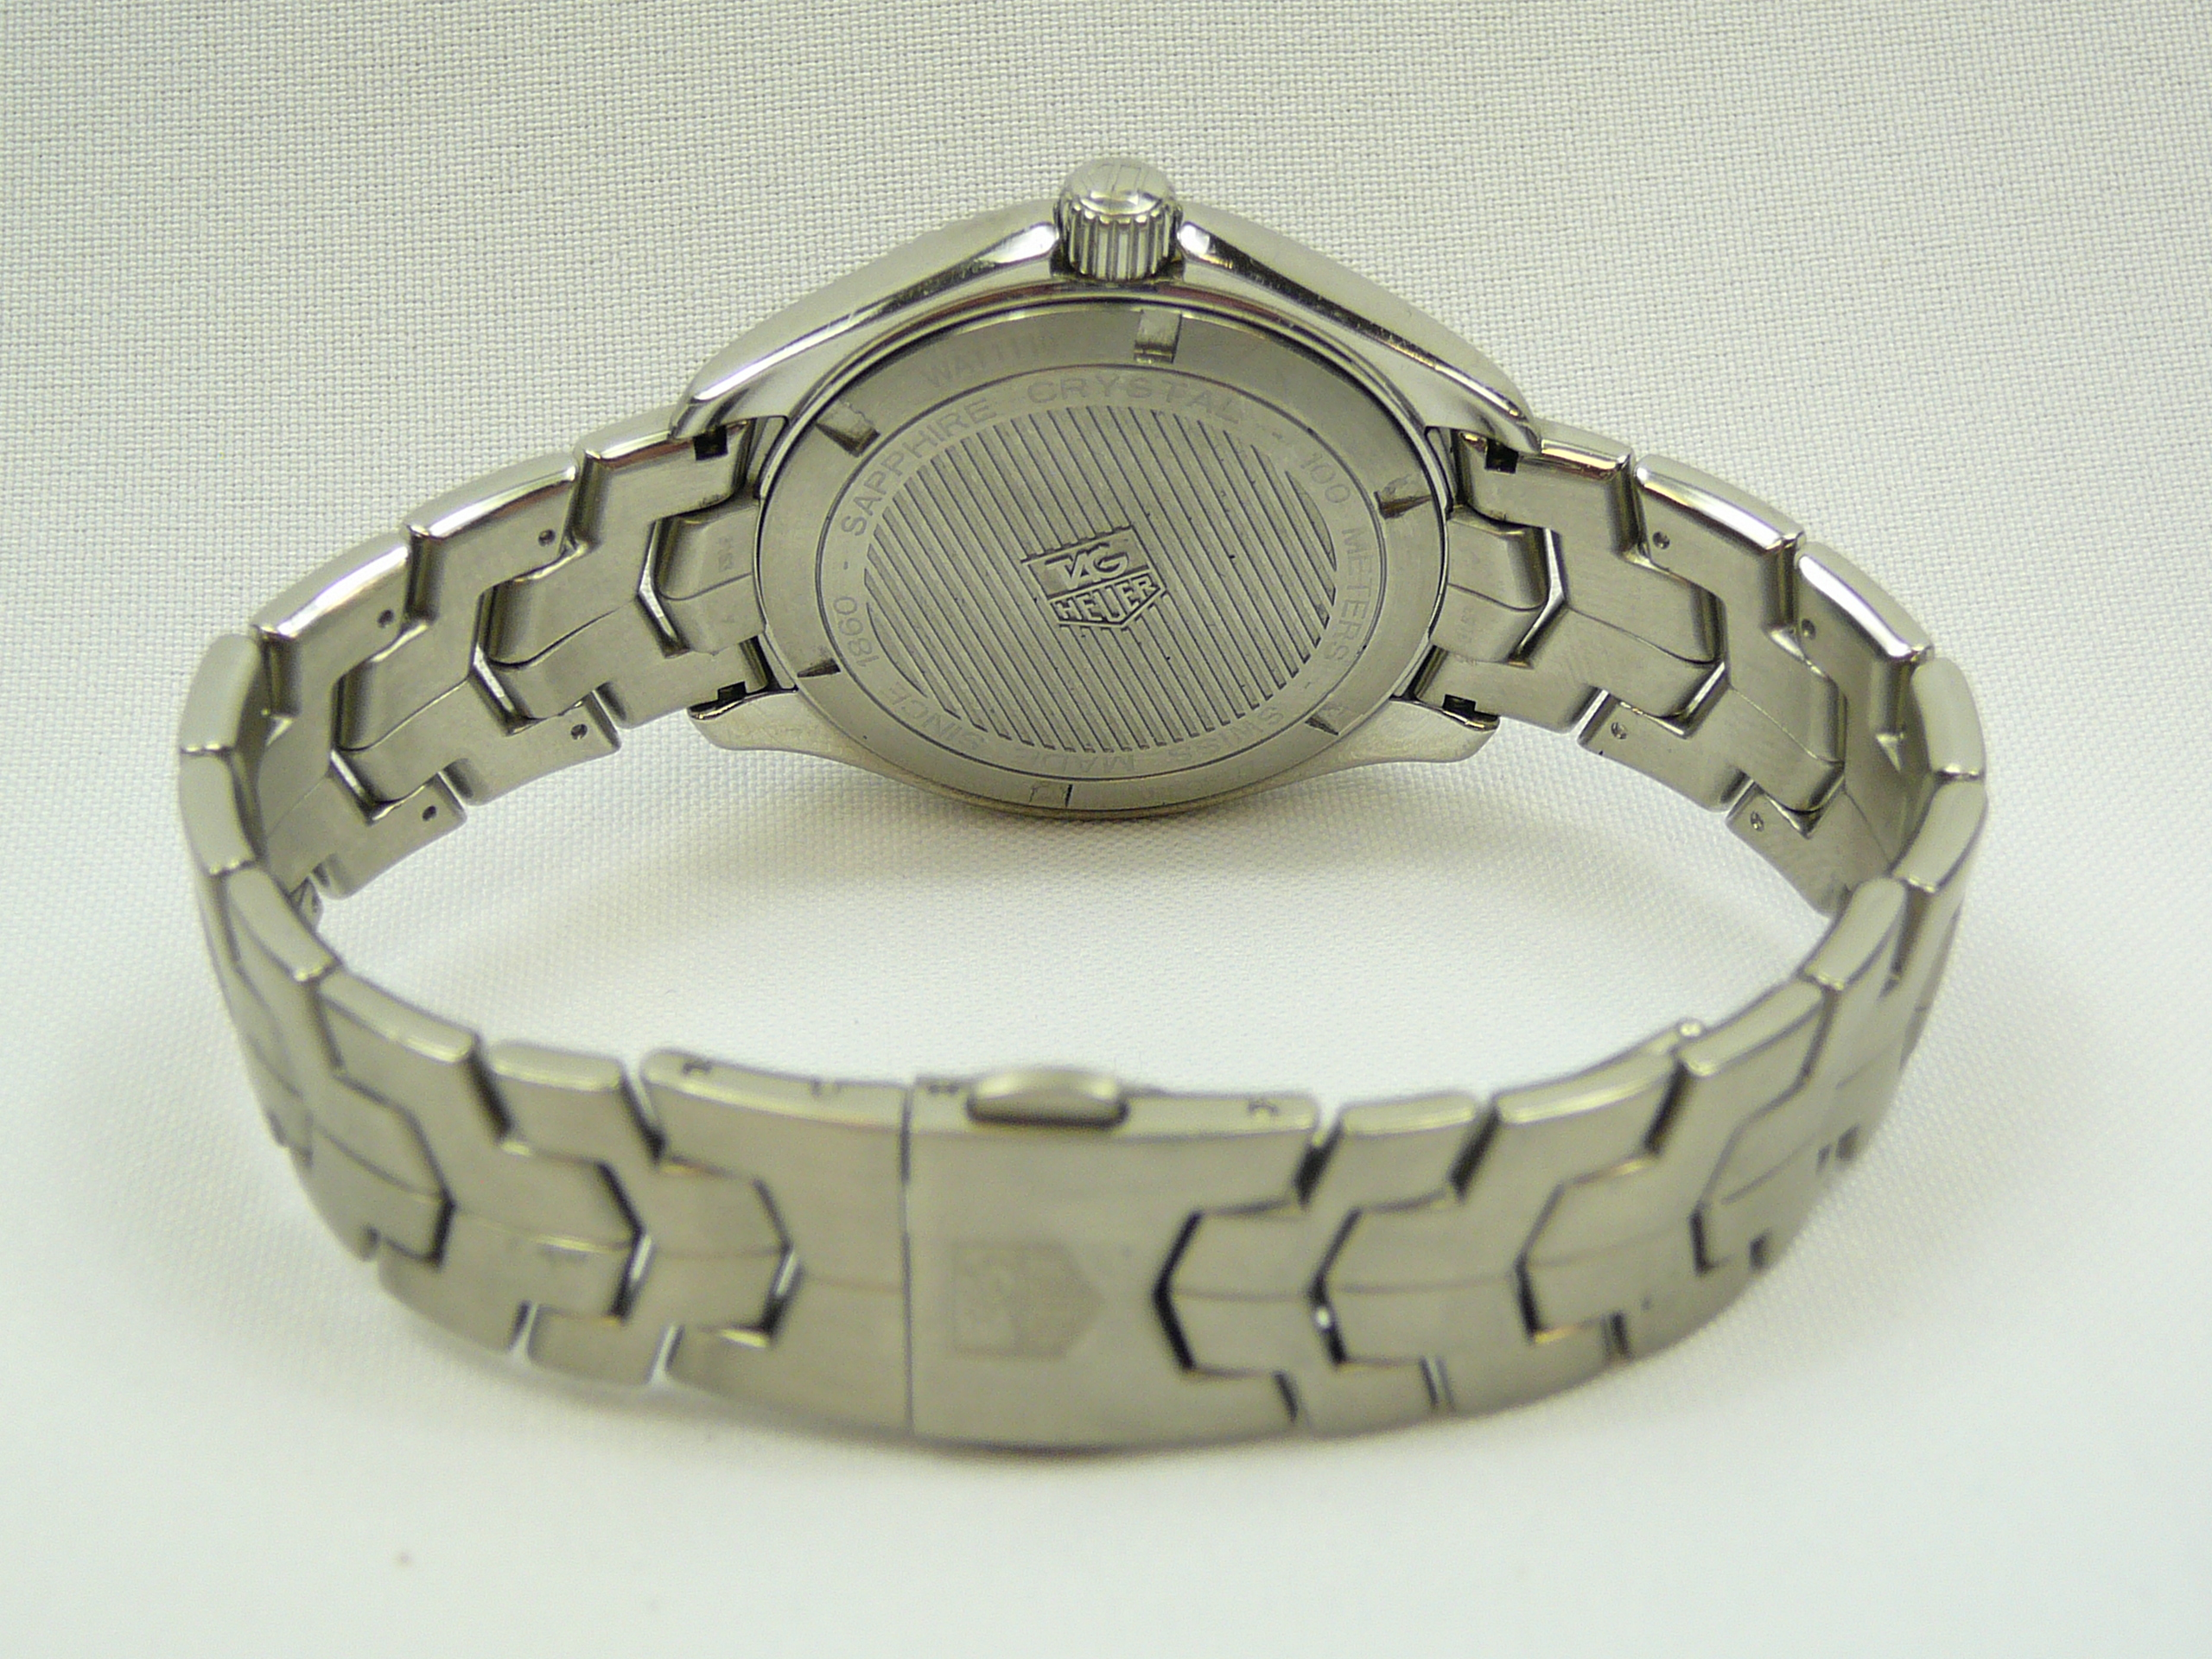 Gents Tag Heuer Wrist Watch - Image 3 of 3